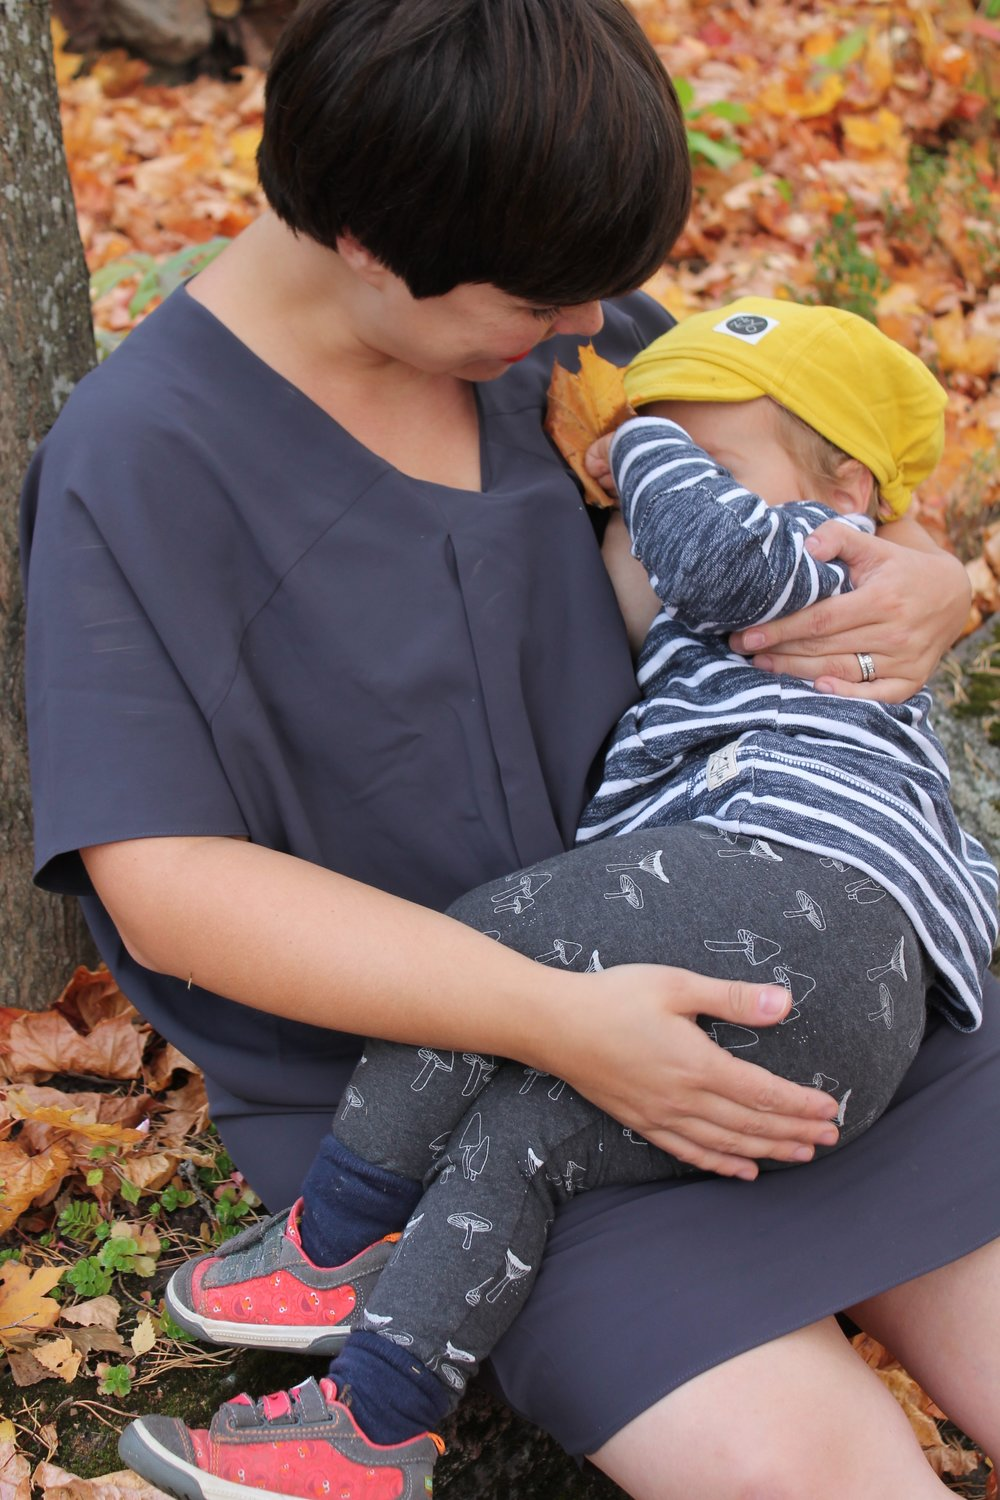 Emma breastfeeds with ease in the Elif Dress Photo by Laura Bermingham